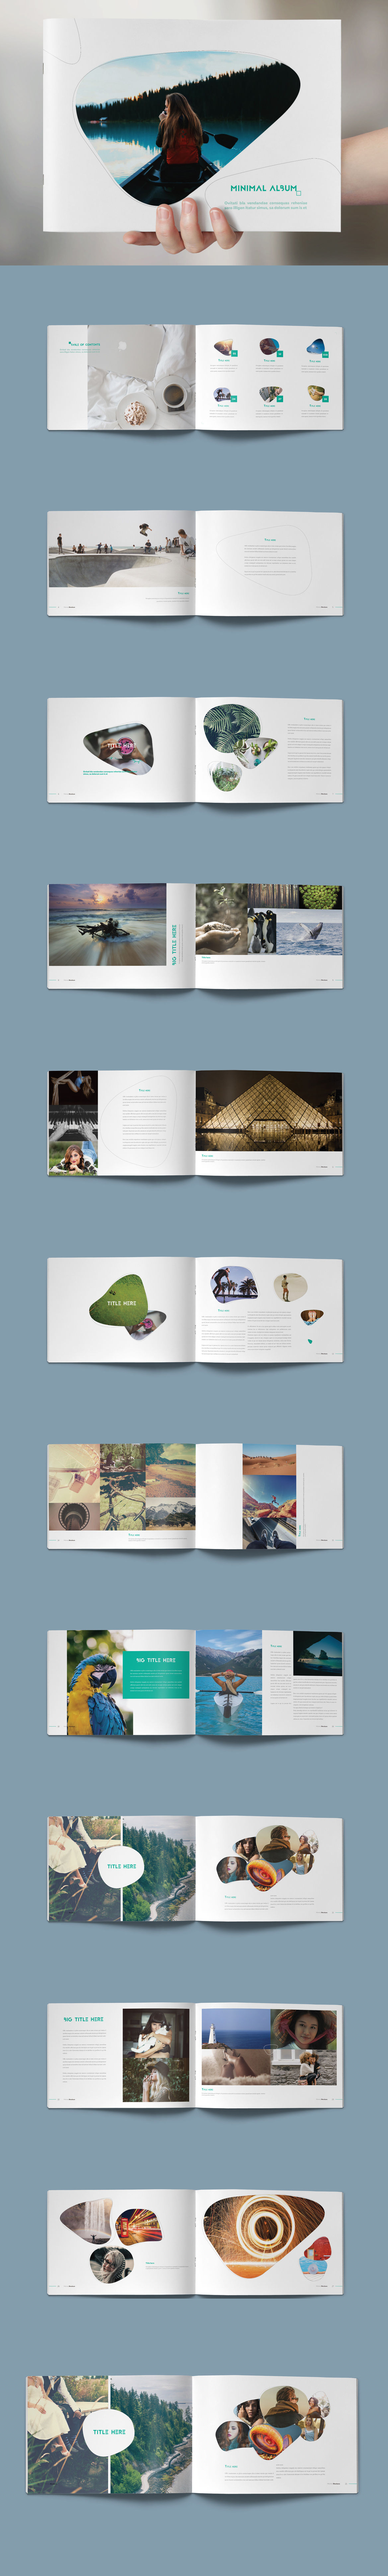 Minimal Photo Album Template InDesign INDD | Photo Album Design ...